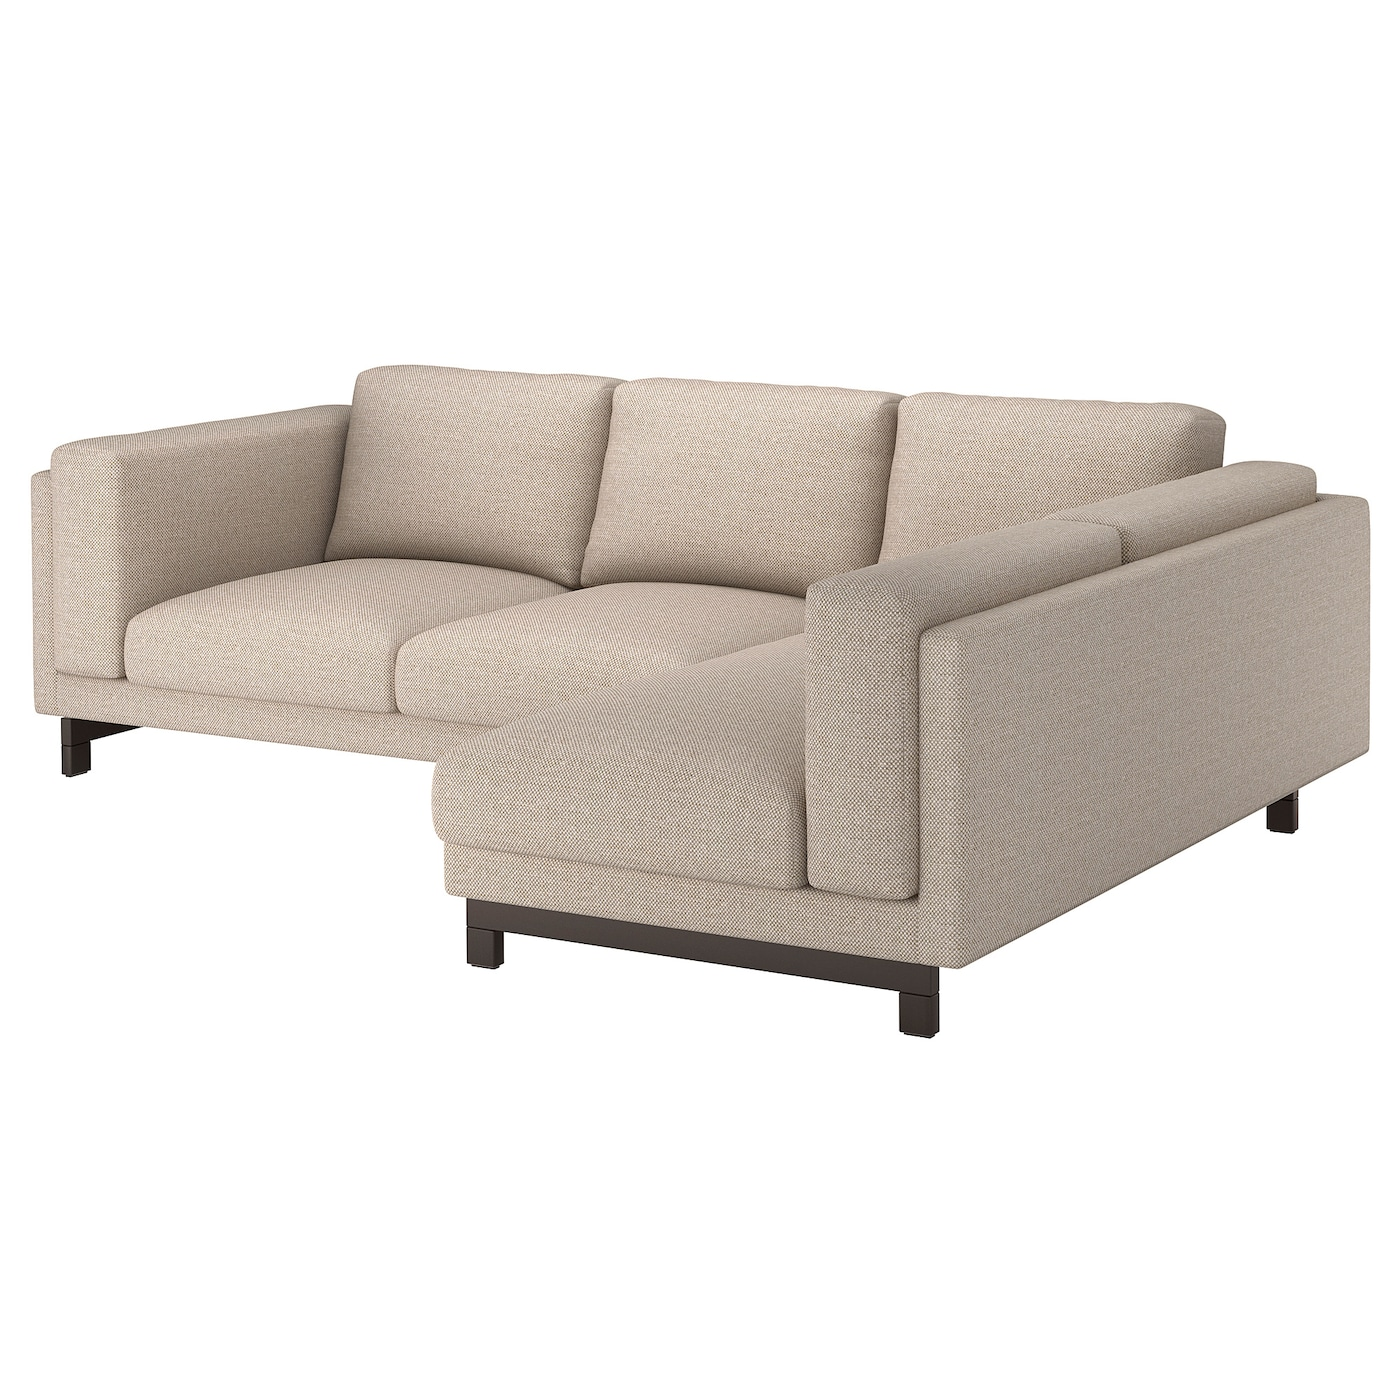 IKEA NOCKEBY 3-seat sofa 10 year guarantee. Read about the terms in the guarantee brochure.